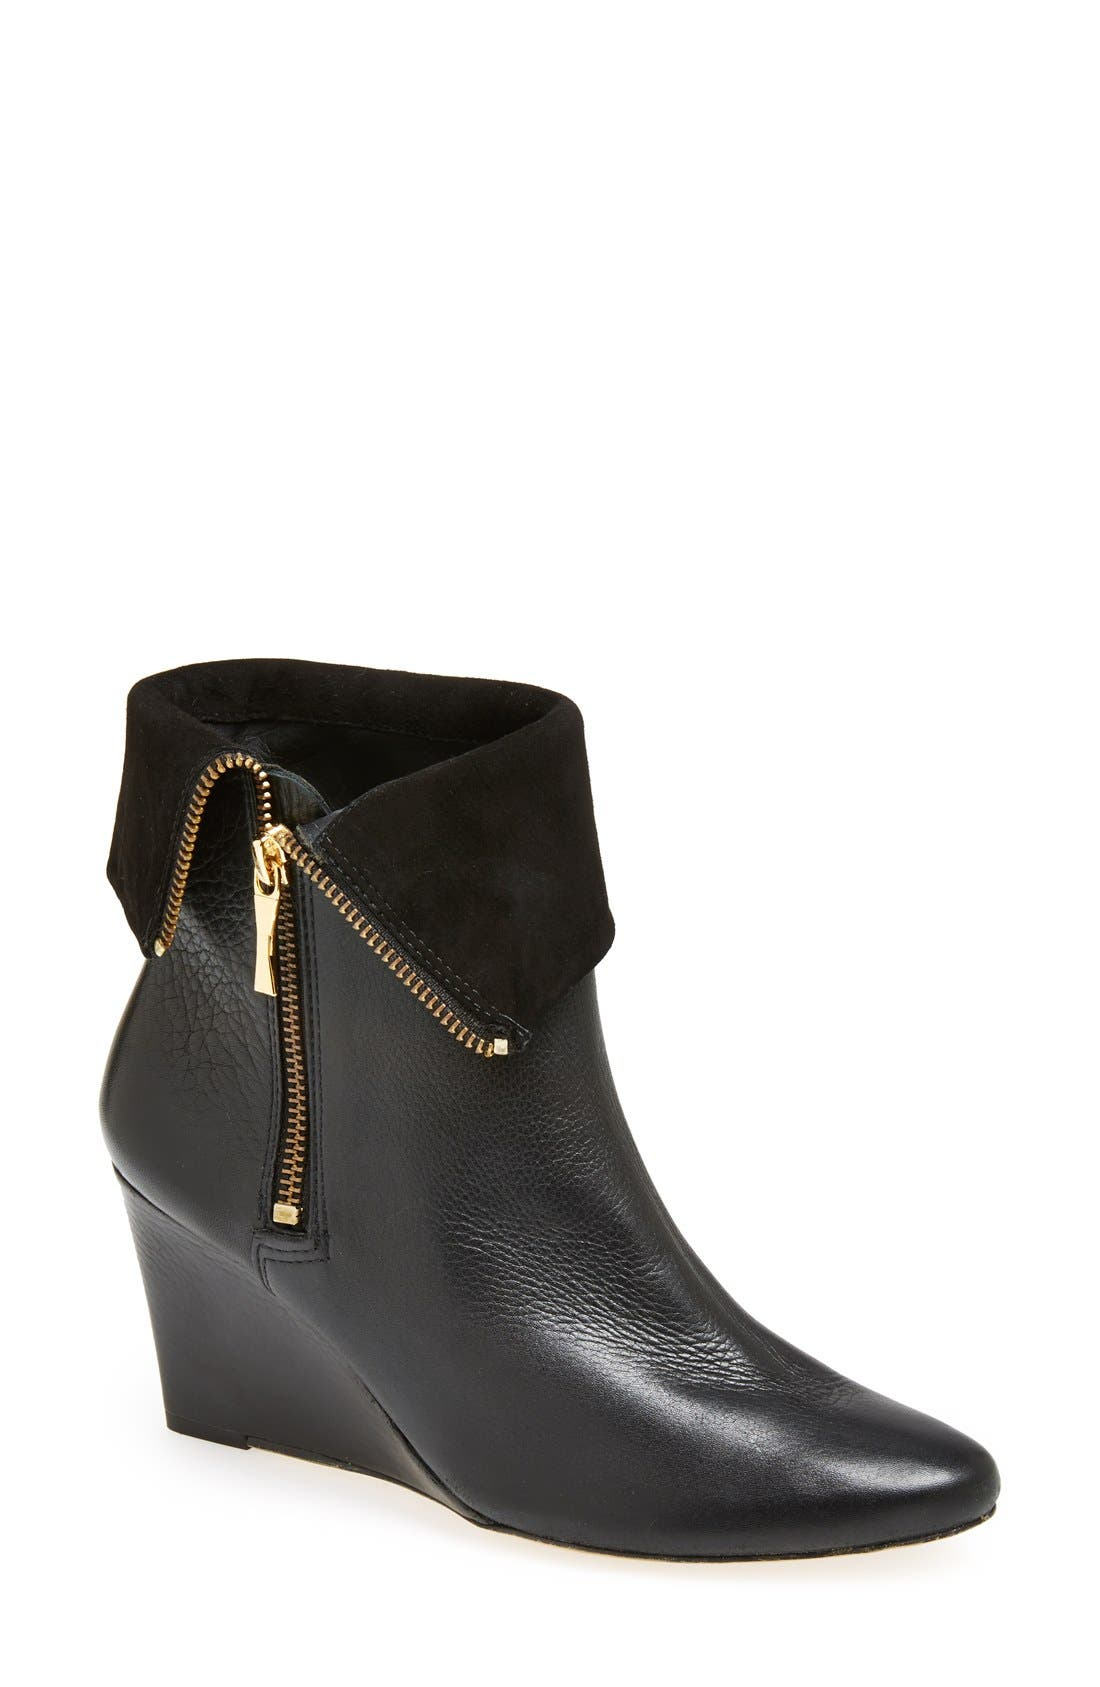 Alternate Image 1 Selected - kate spade new york 'volte' bootie (Women)